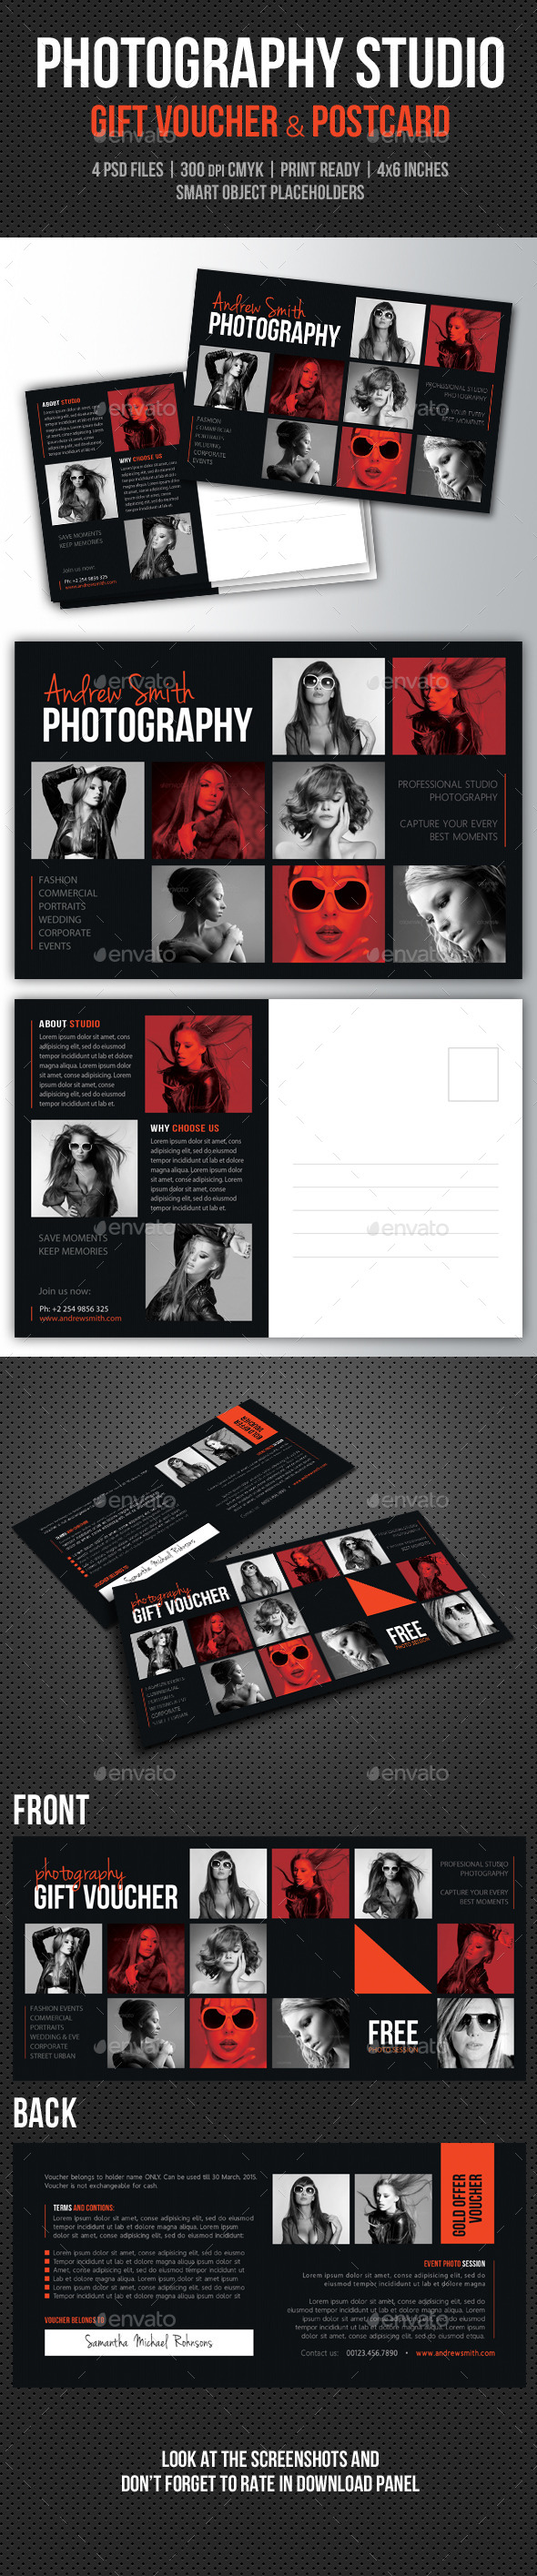 GraphicRiver Photography Studio Gift Voucher and Postcard 11148635